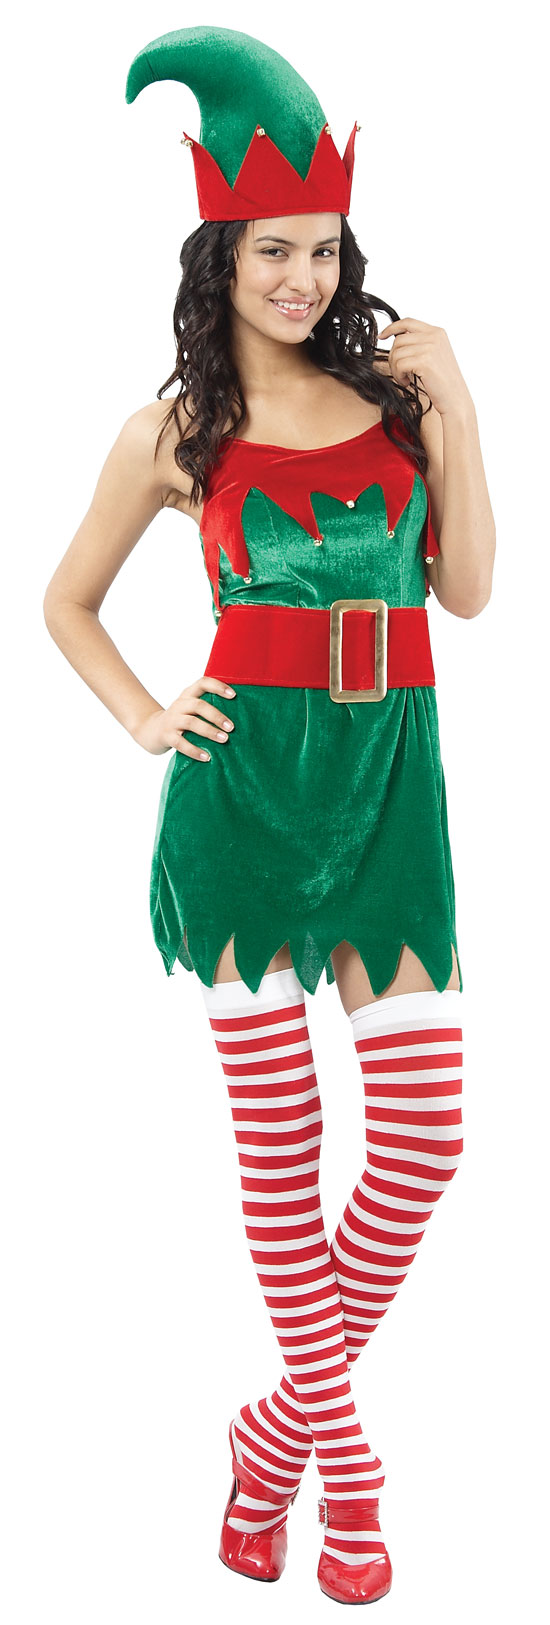 Ladies who dress as elves sexy image